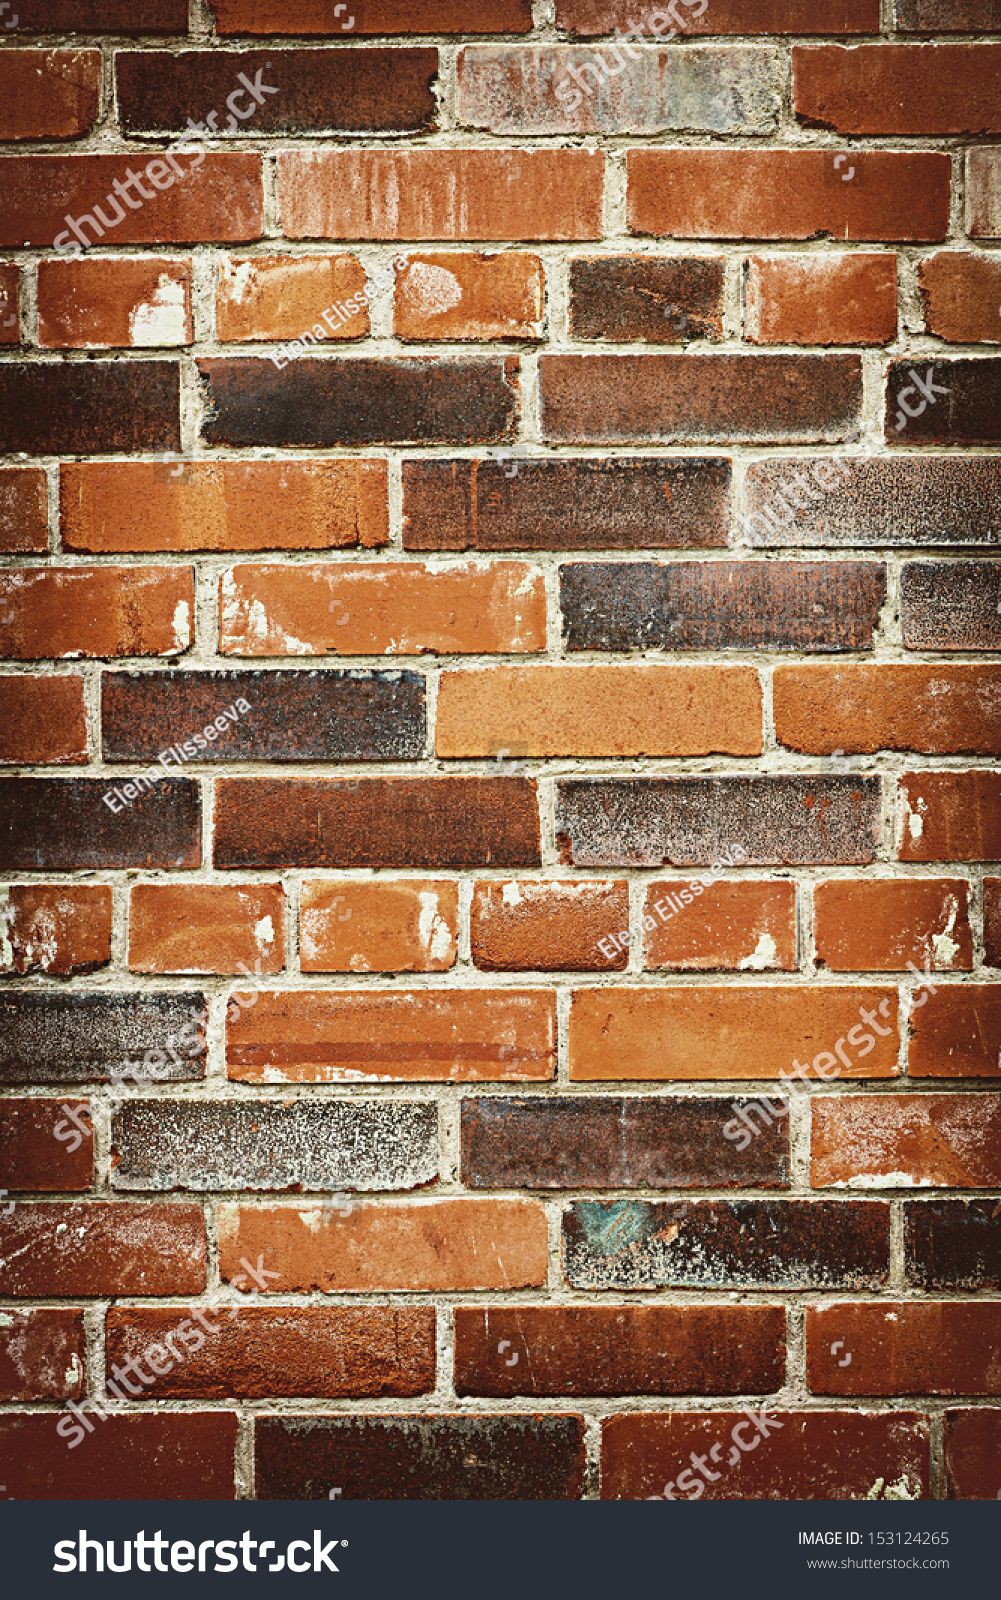 Red and brown brick background of grungy wall stock photo for Red and brown walls